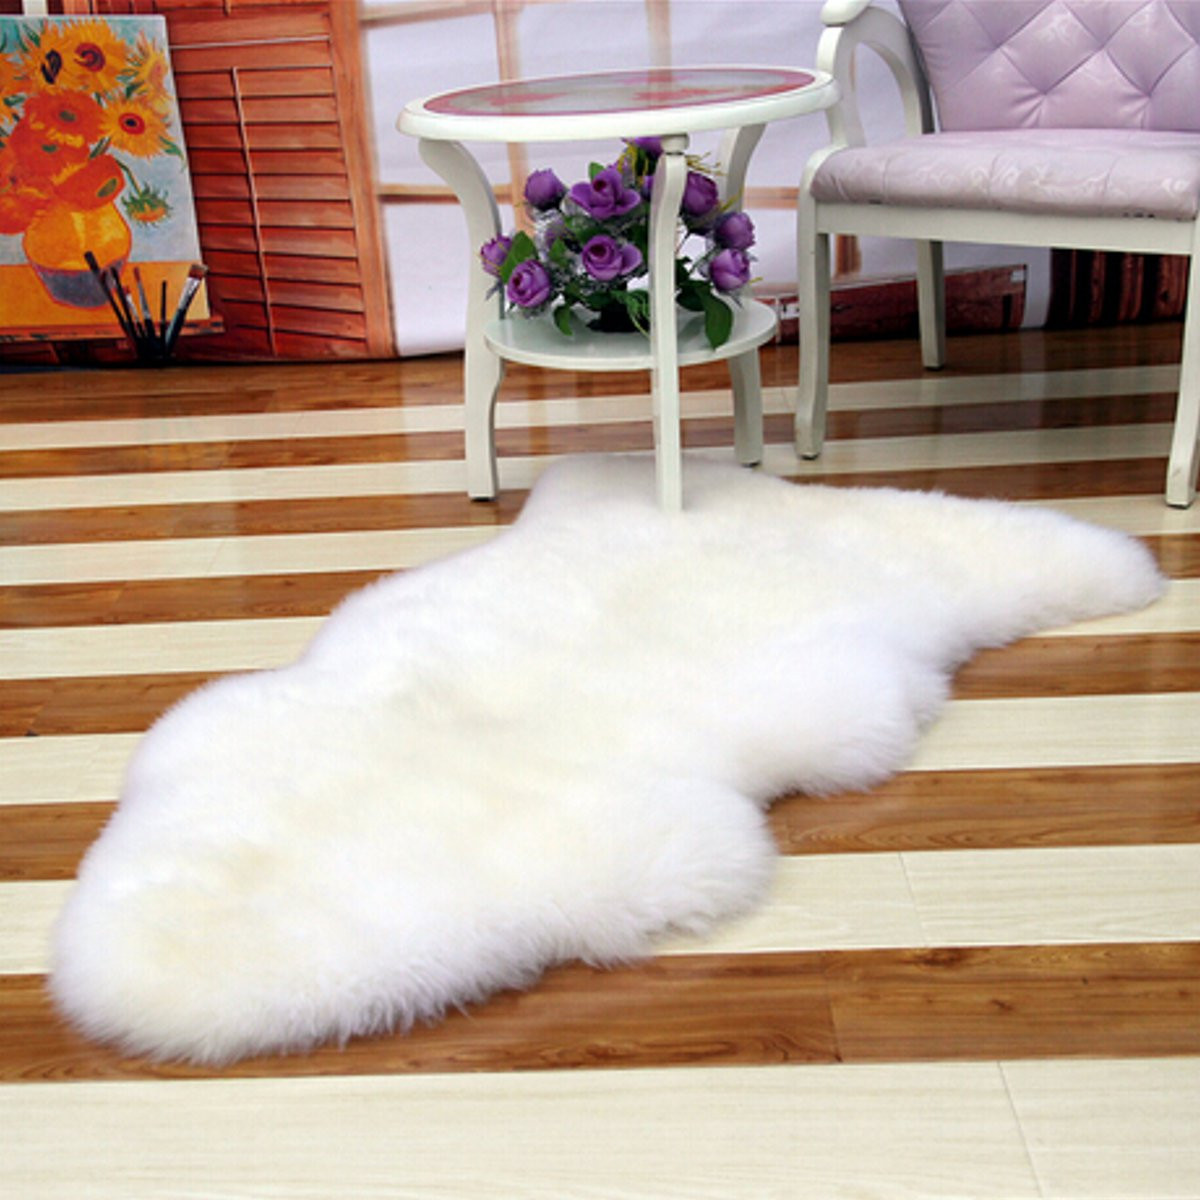 Meigar 252119593140 Soft Sheepskin Plain Fluffy Skin Faux Fur Fake Rug Cheap Washable Mat Small Rugs,White color